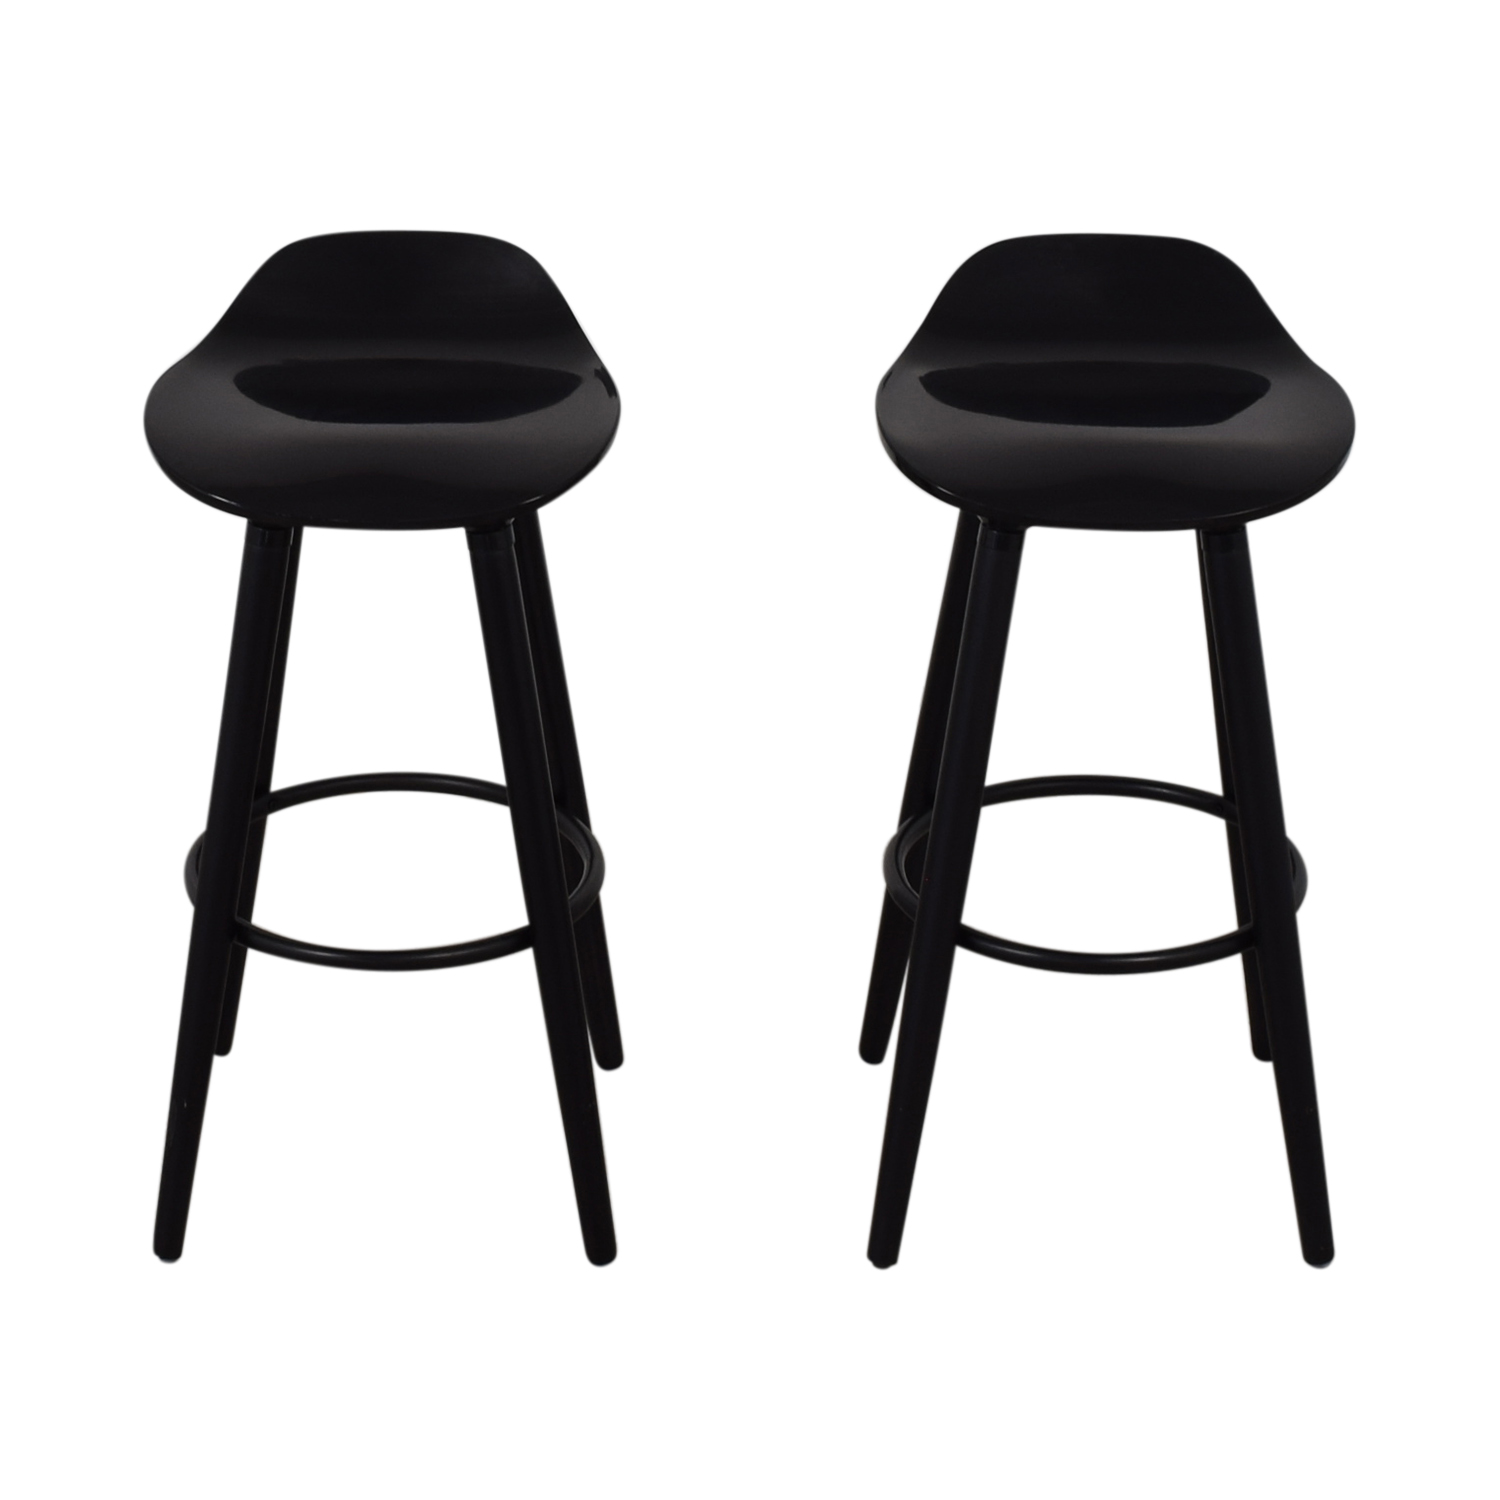 shop Sleek Black Modern Bar Stools  Stools